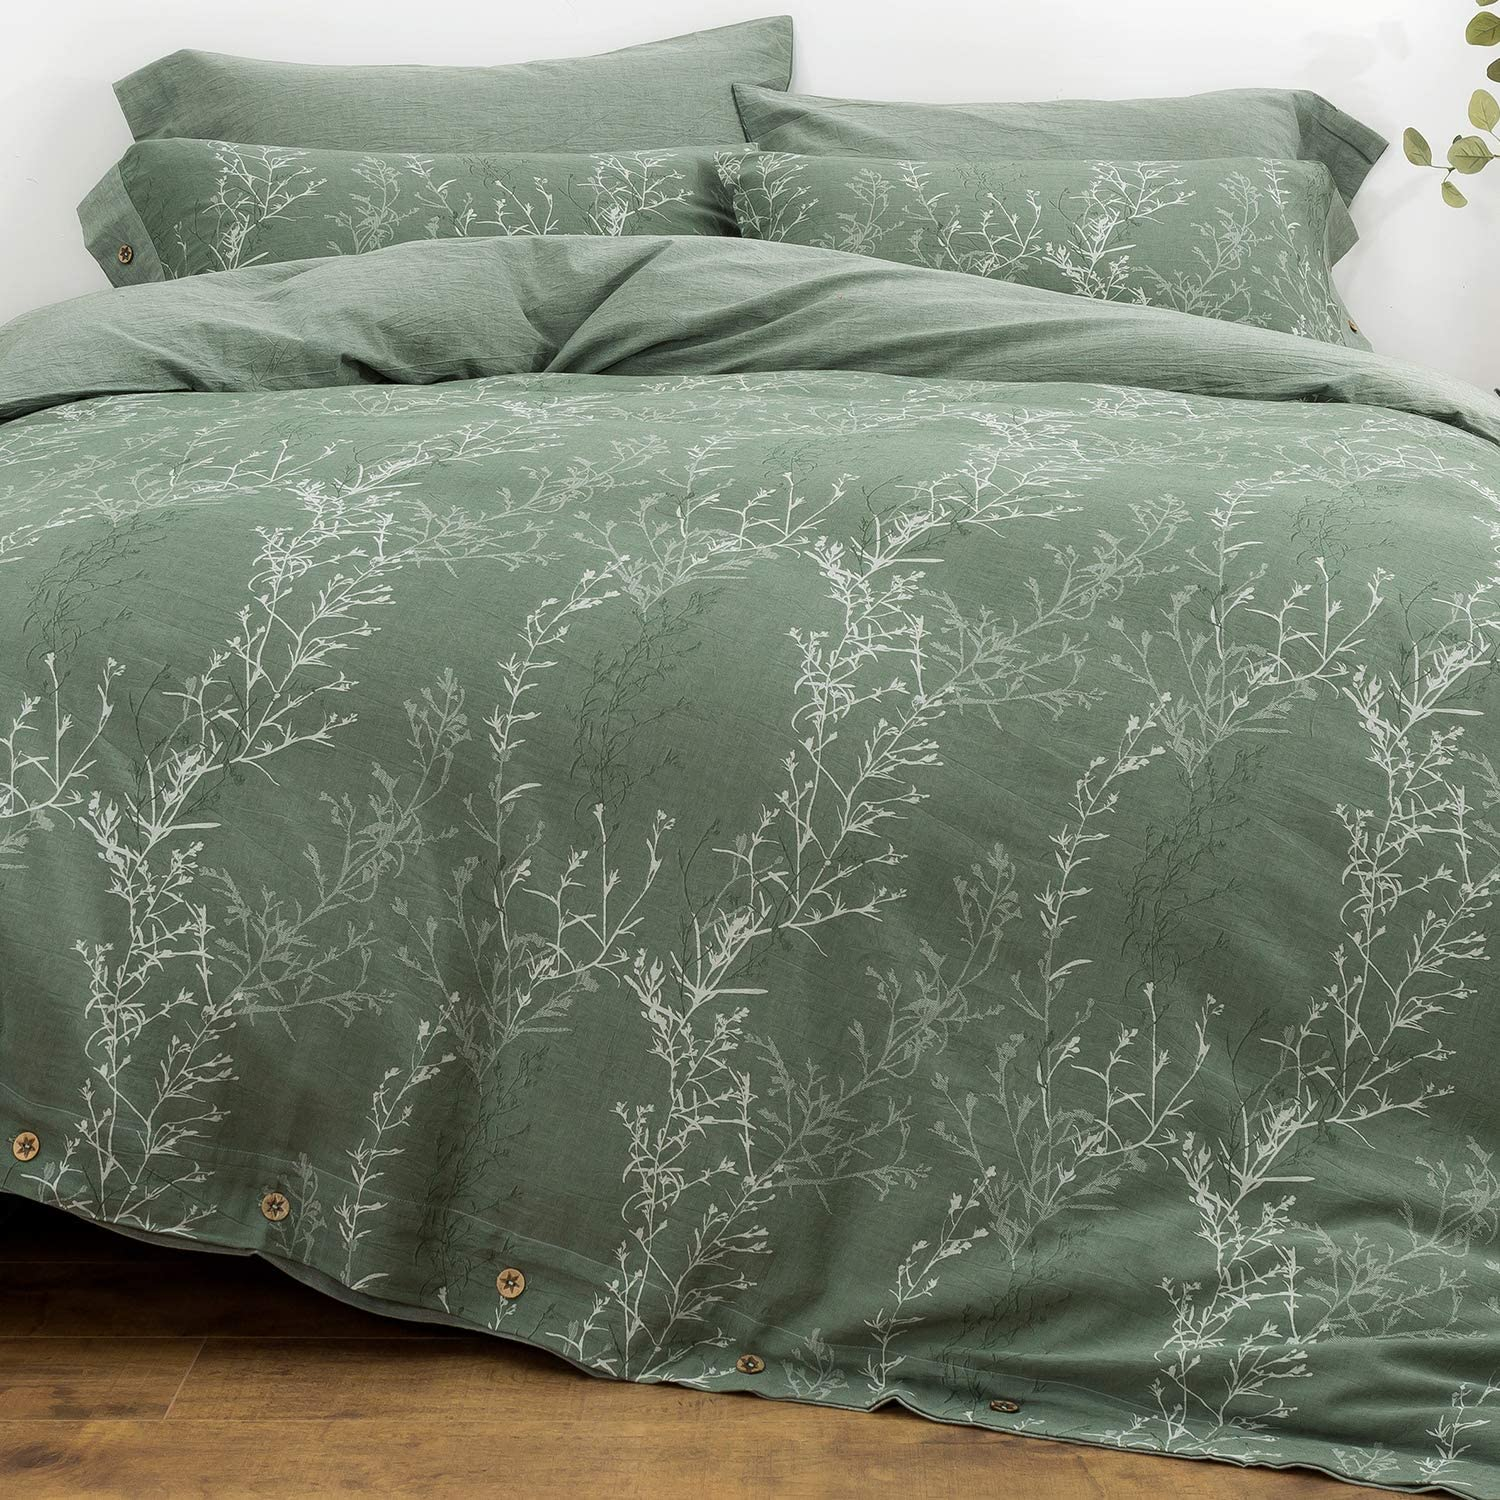 OREISE Duvet Cover Set Full/Queen Size Washed Cotton Yarn, Jacquard Green and White Thin Branch Pattern Floral Style 3Piece Bedding Set